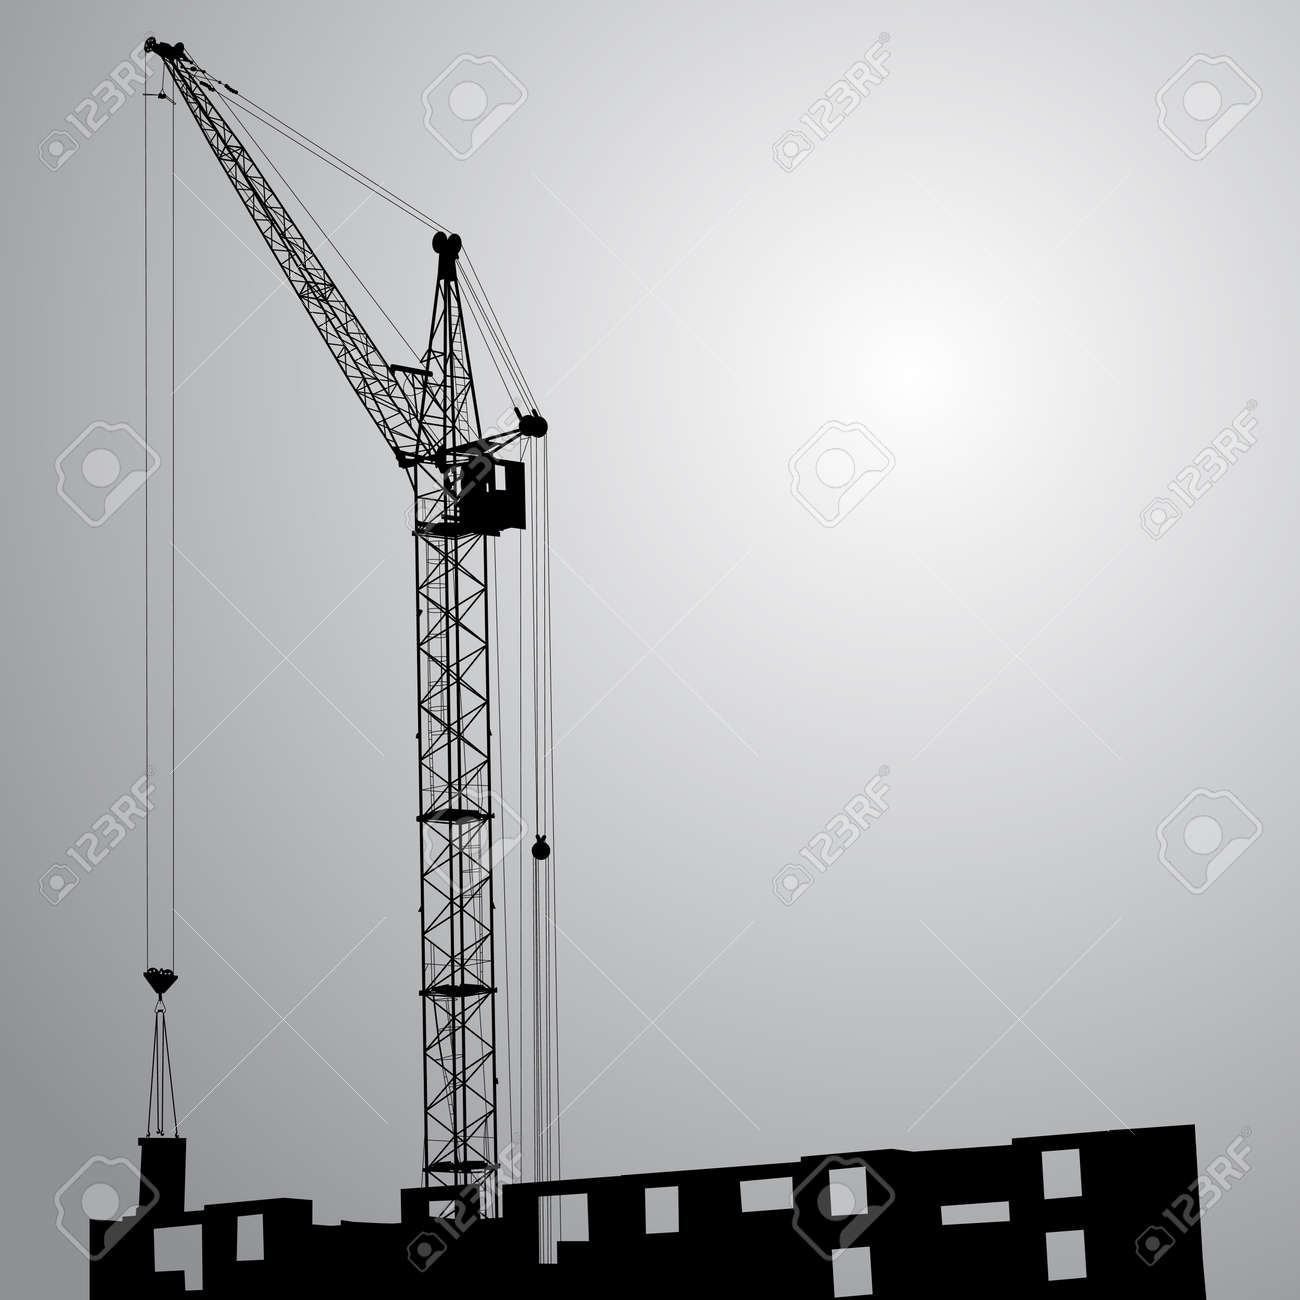 Silhouette of one cranes working on the building on a black background Stock Vector - 14101630